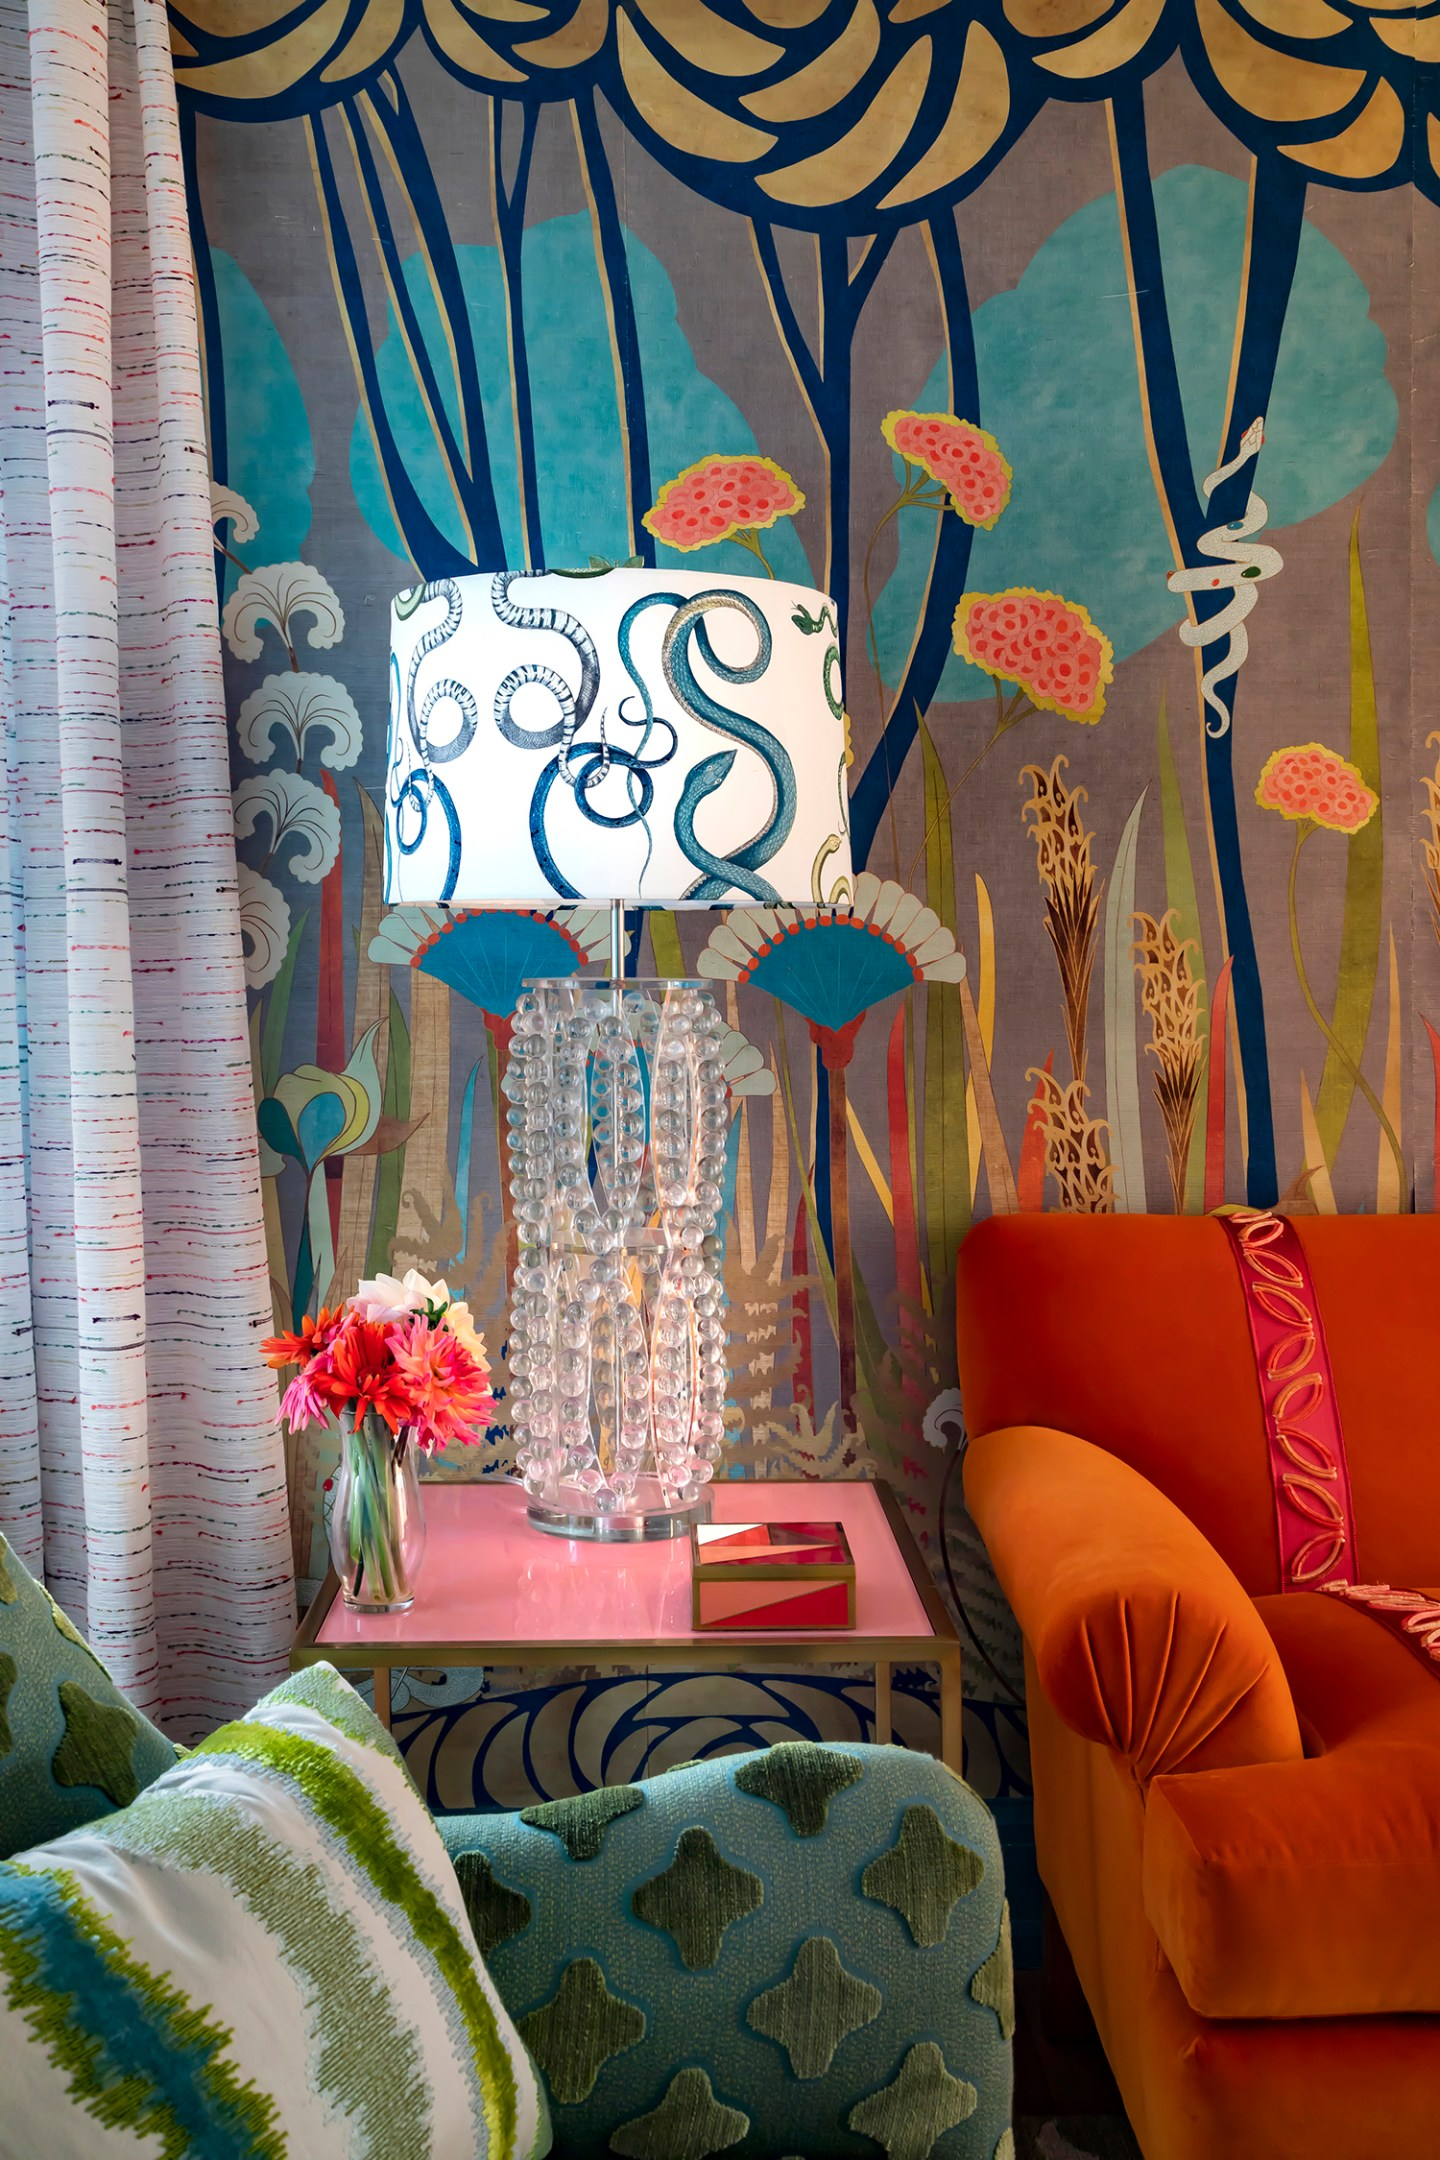 Courtney-McLeod-RMLID-JL-Showhouse_28 Tips for Adding Color and Pattern to a Room from a Louisiana Native